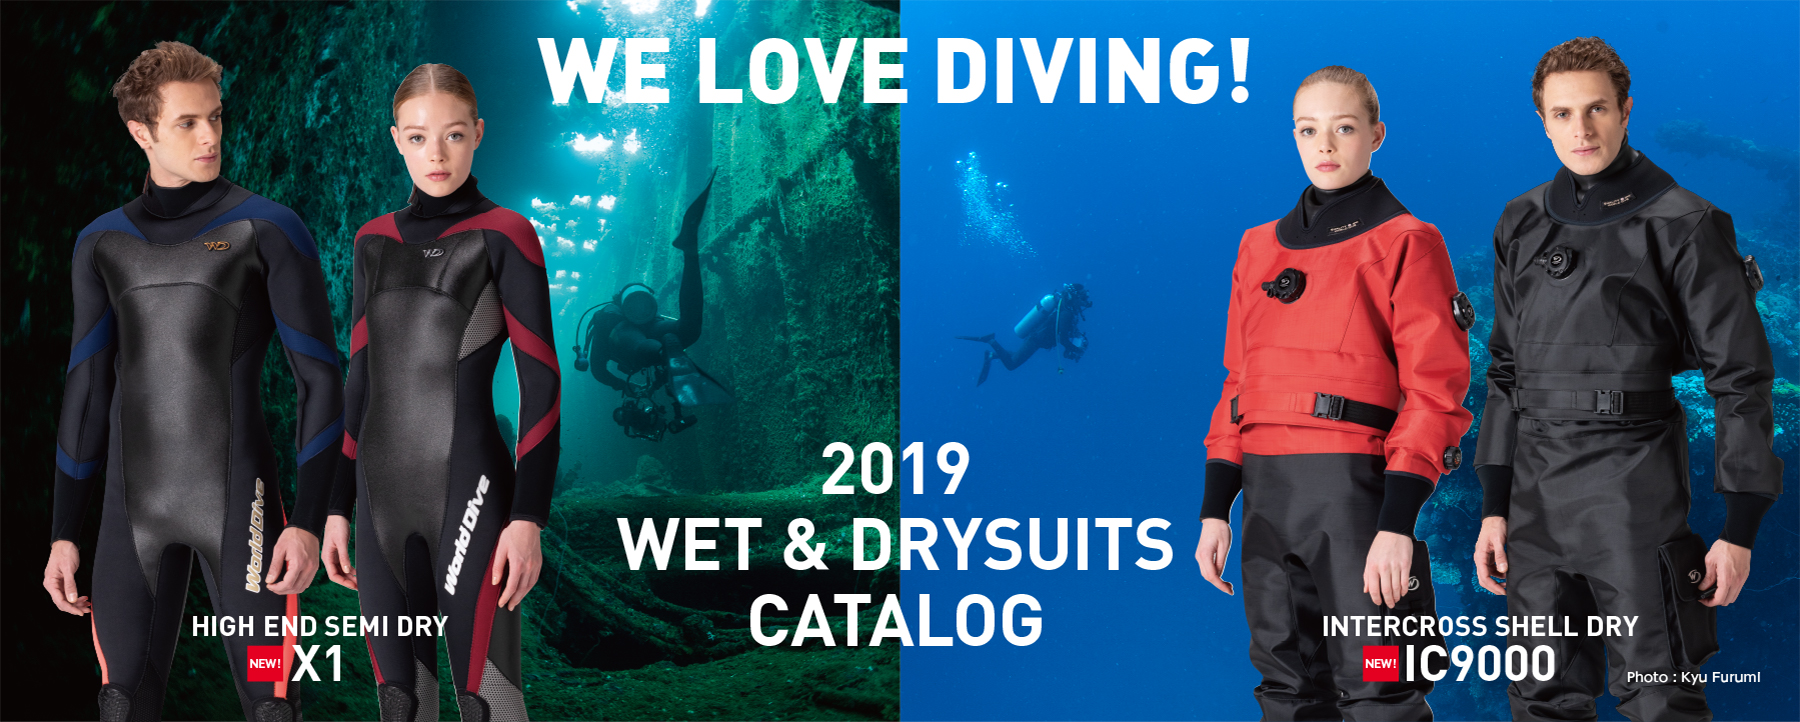 WE LOVE DIVING!